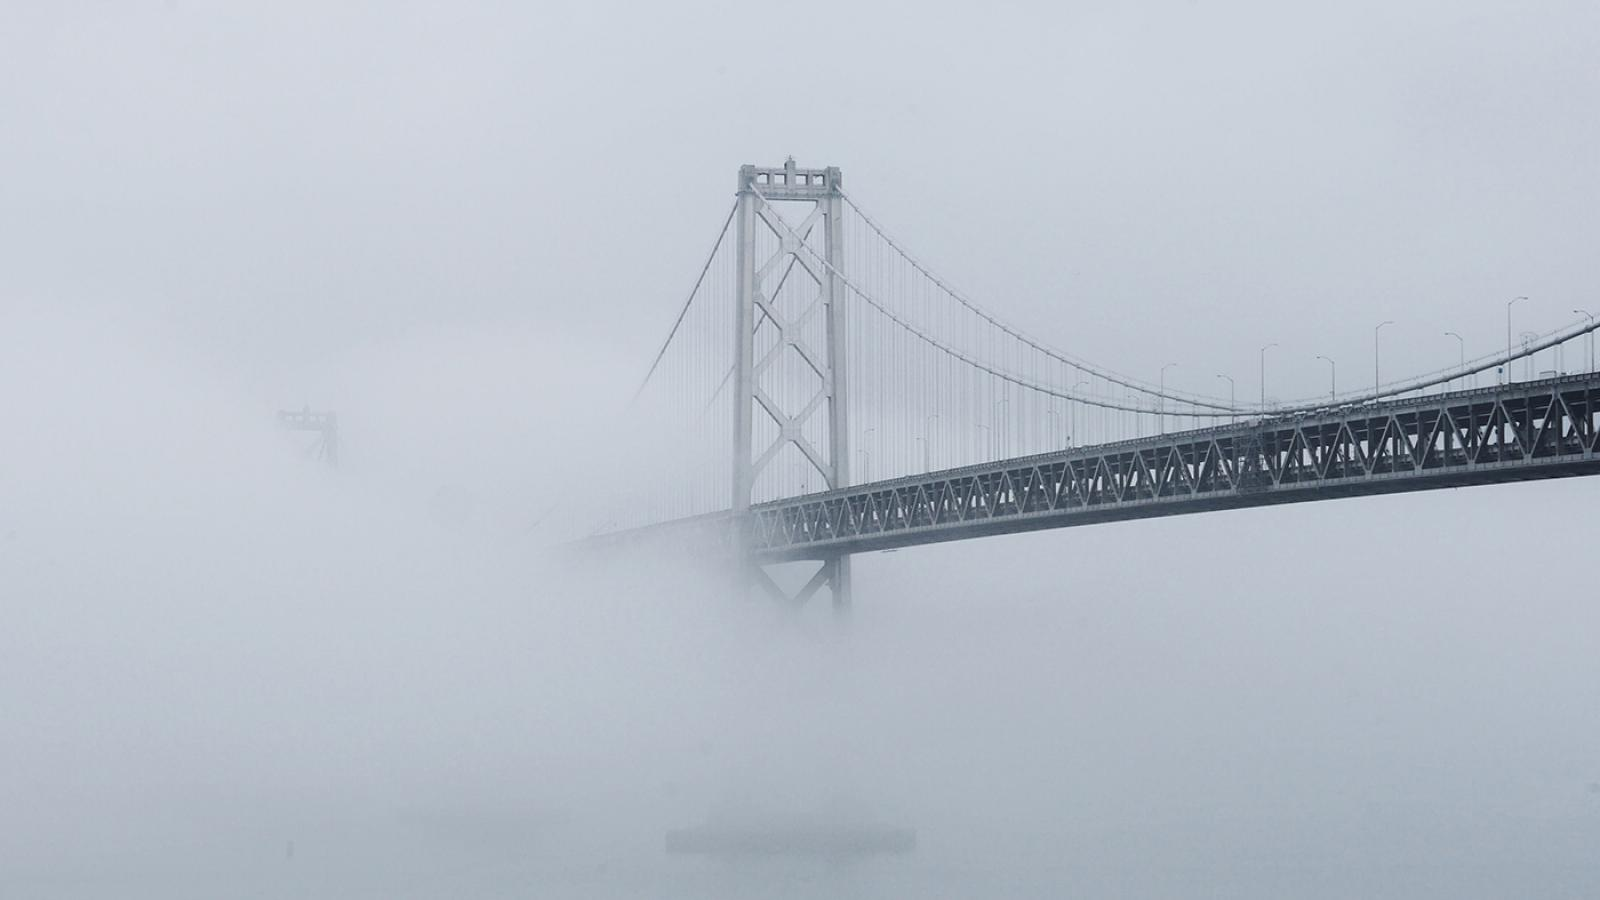 Wallpaper of the Week - Bay Bridge